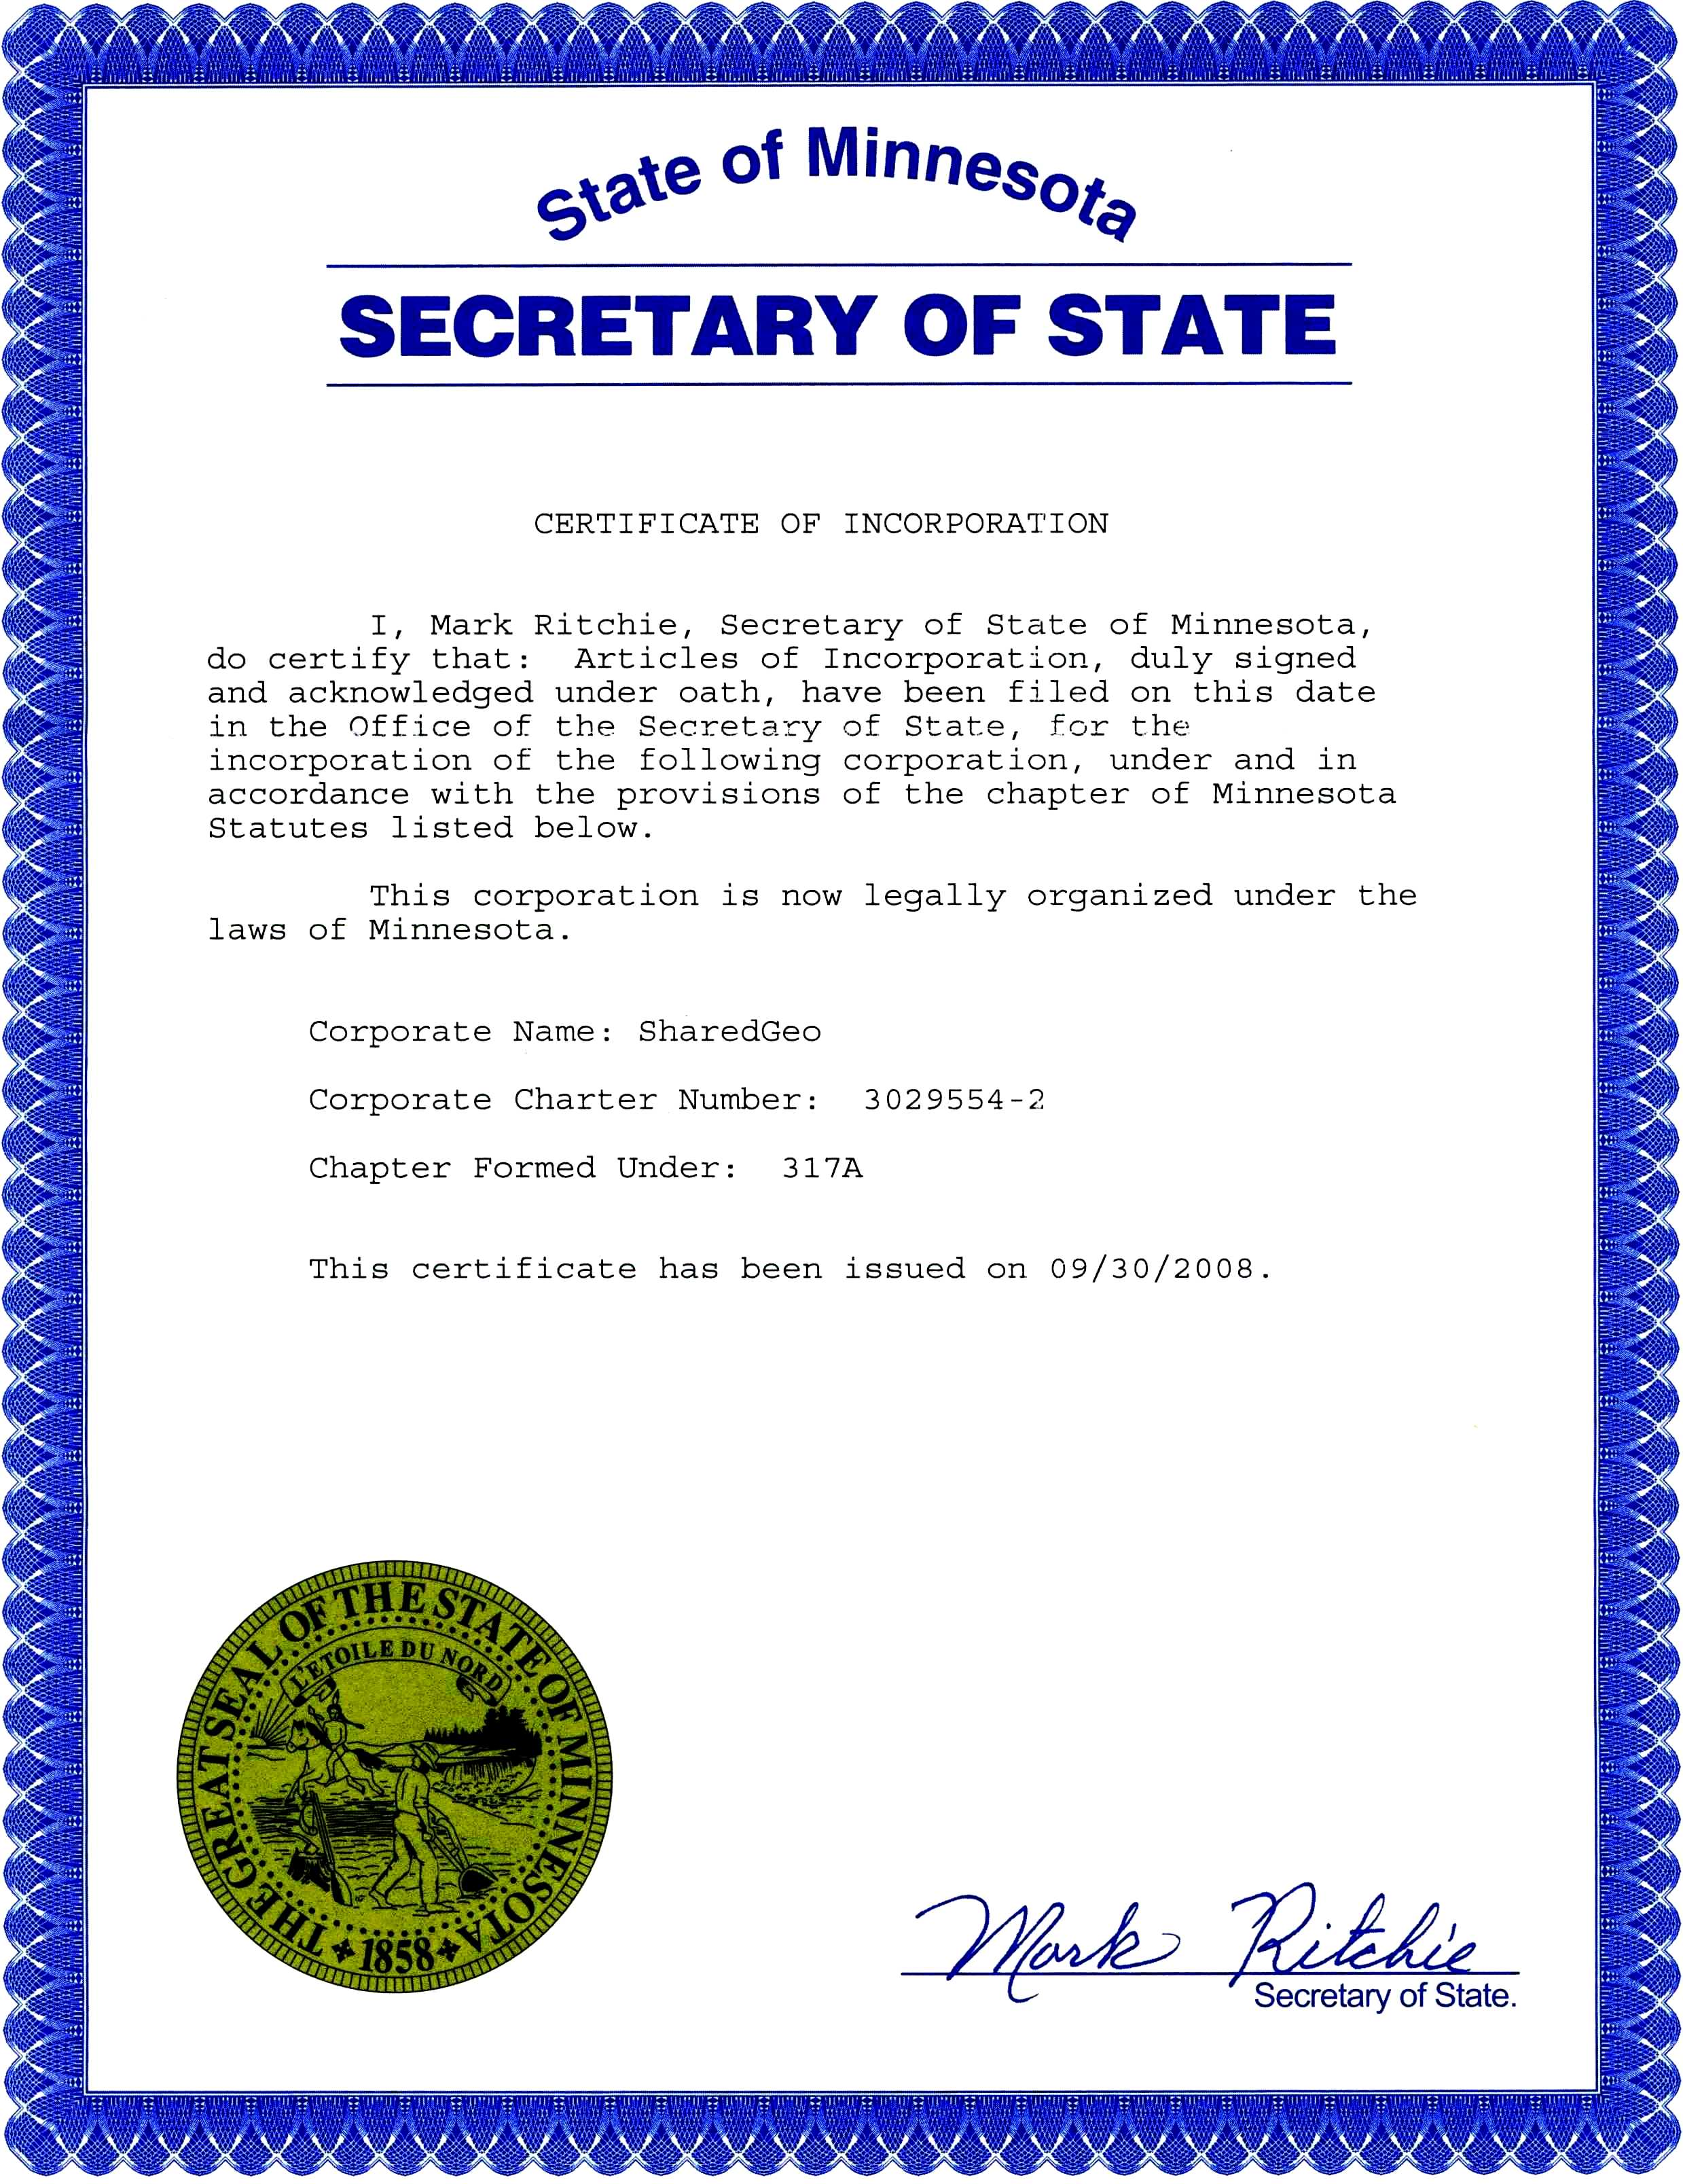 Governance sharedgeo articles of incorporation state of minnesota certificate of incorporation xflitez Image collections